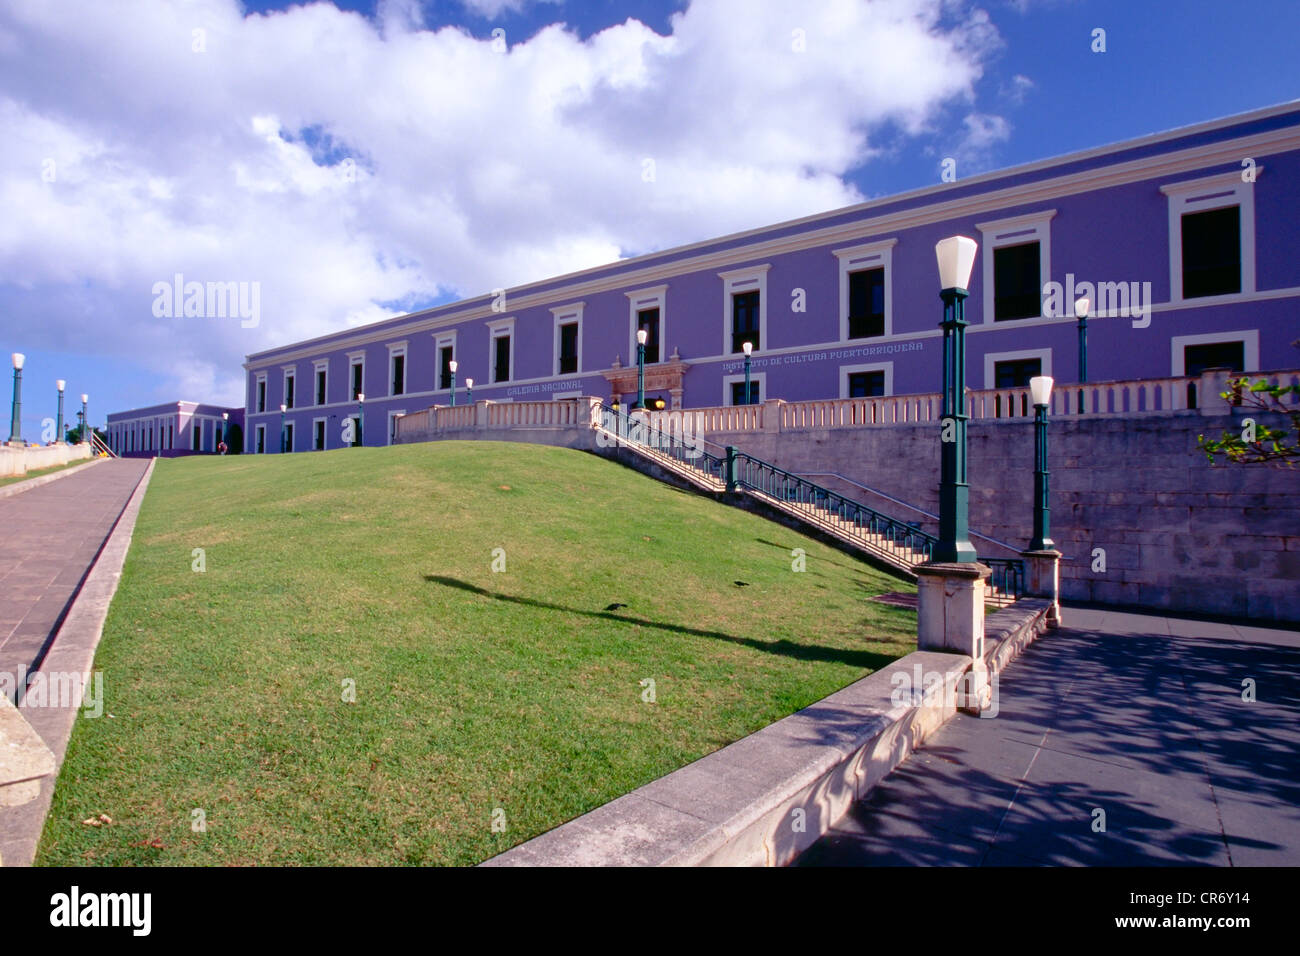 Low Angle View of the Institute of Puerto Rican Culture , Old San Juan, Puerto Rico - Stock Image